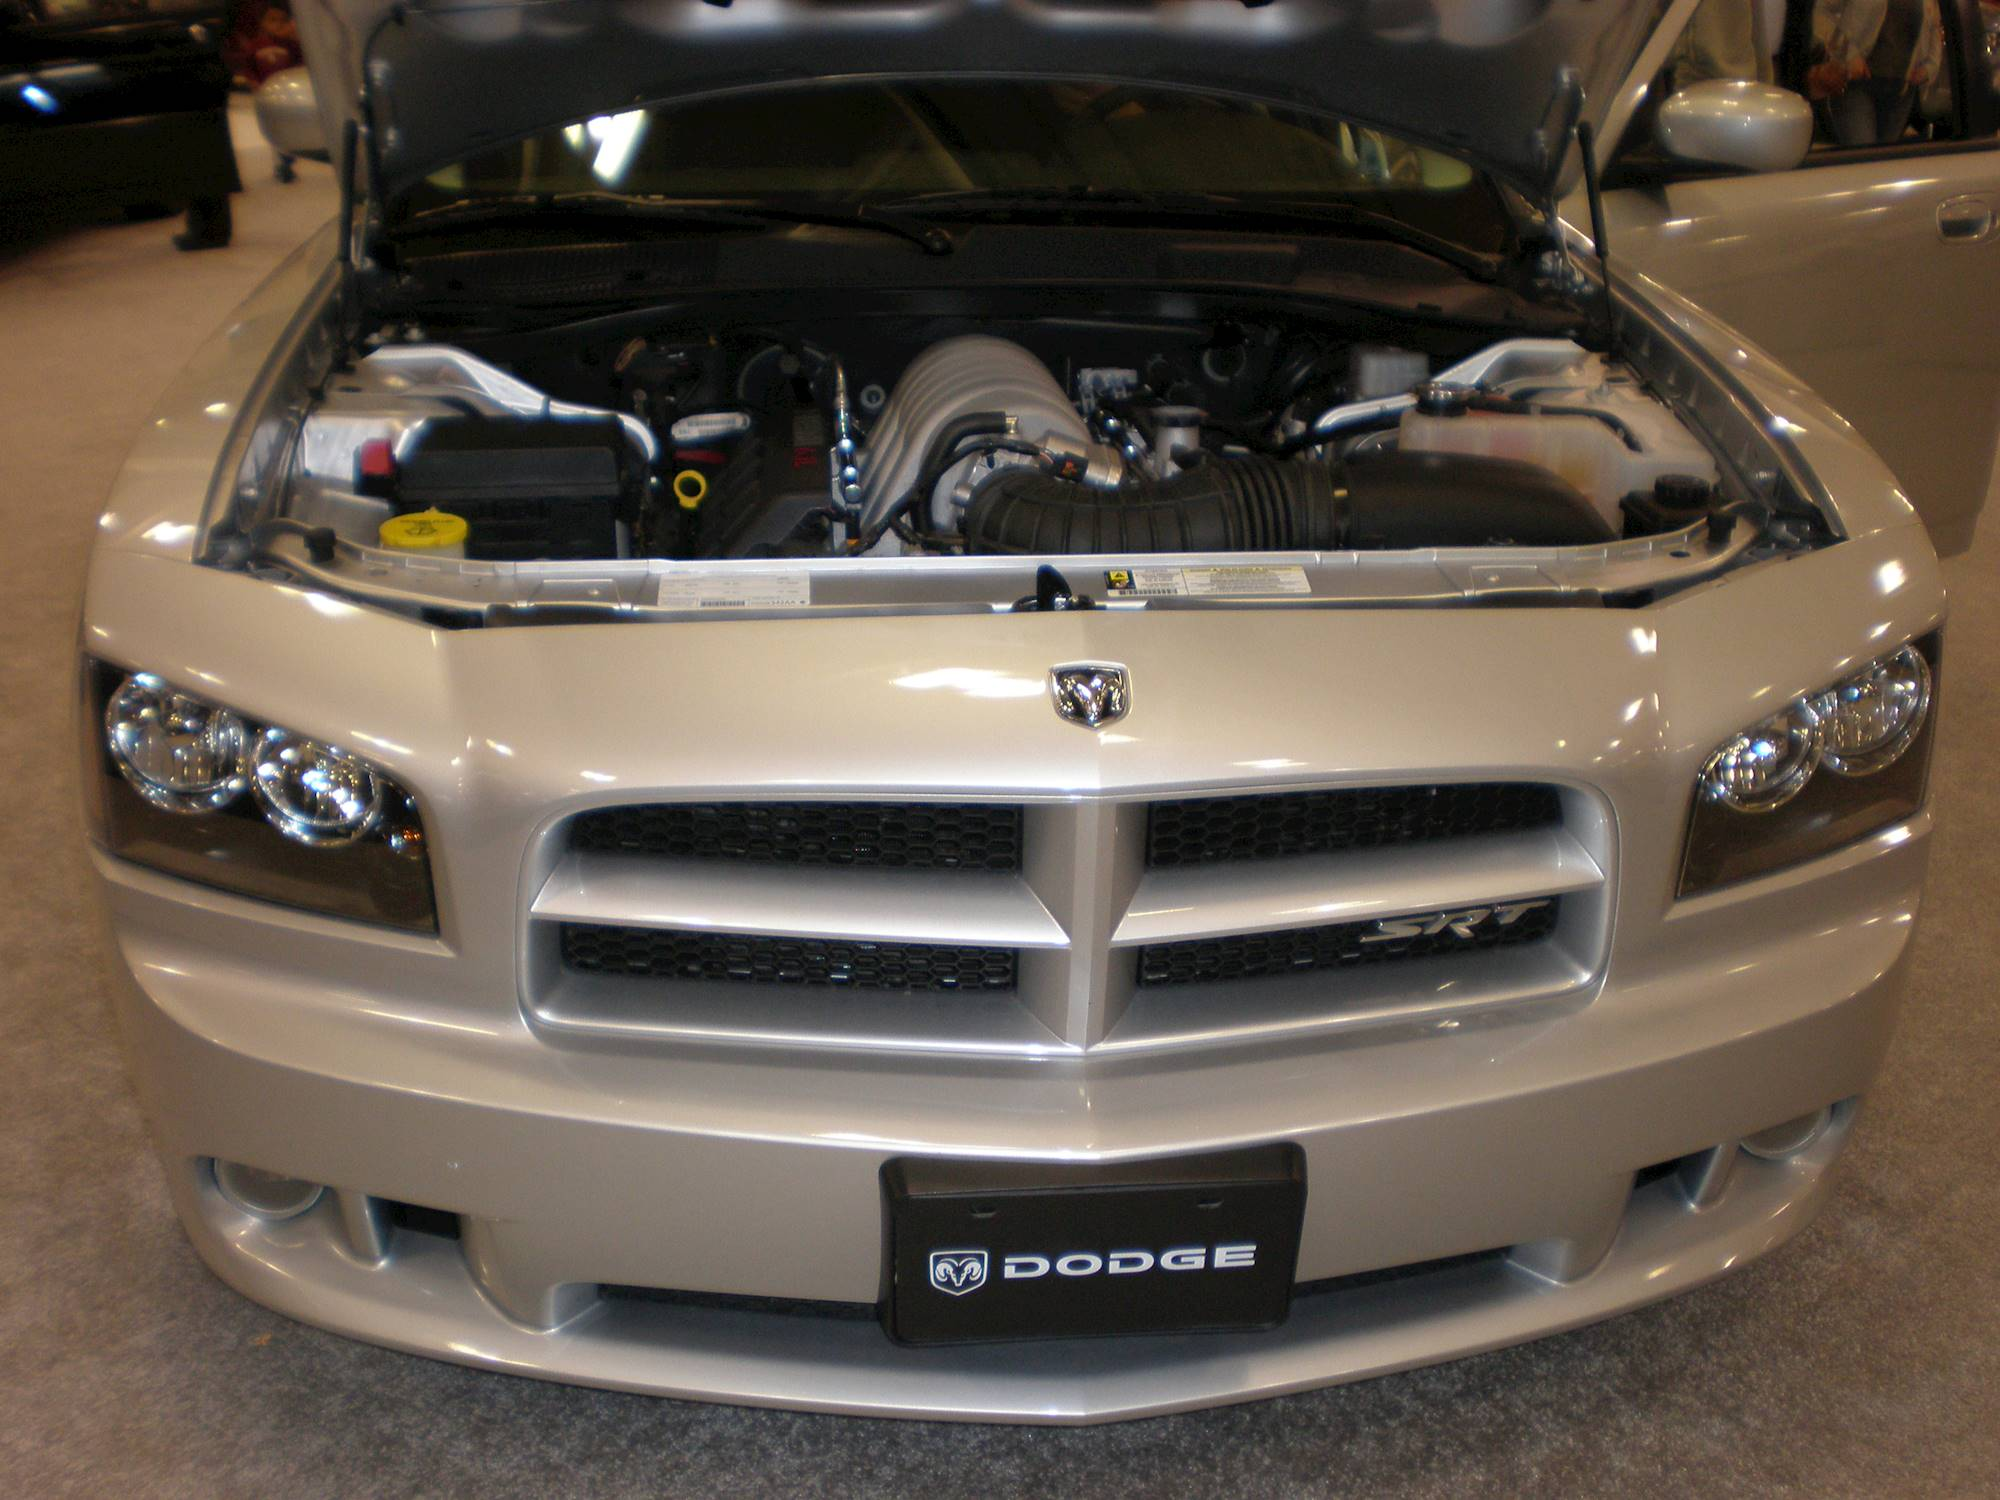 2008 dodge charger srt 8 sedan 6 1l v8 auto. Black Bedroom Furniture Sets. Home Design Ideas